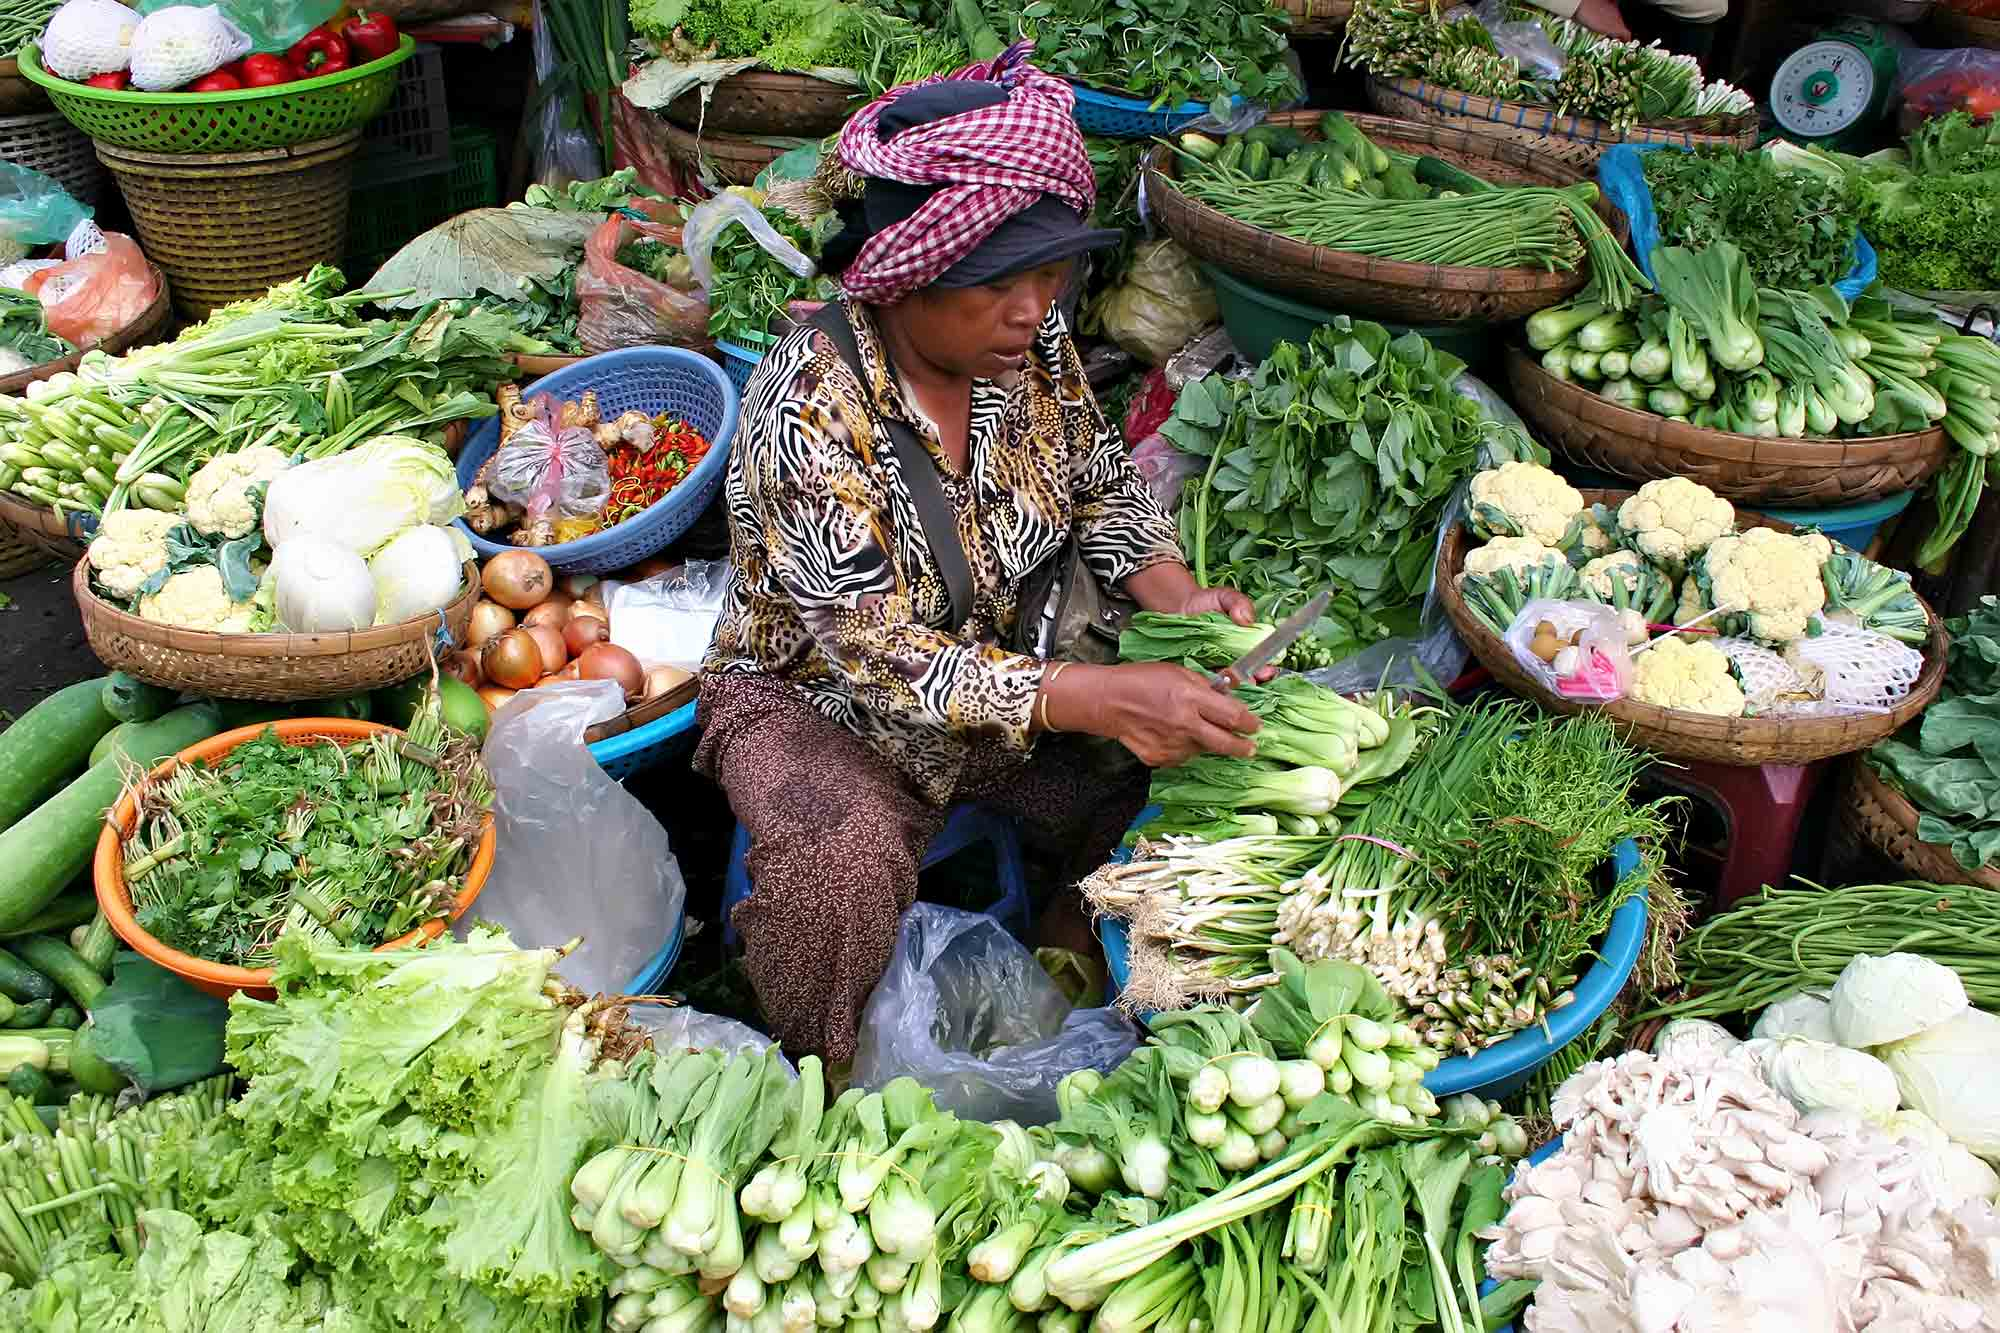 Selling vegetables at a market in Phnom Penh, Cambodia. © Ulli Maier & Nisa Maier